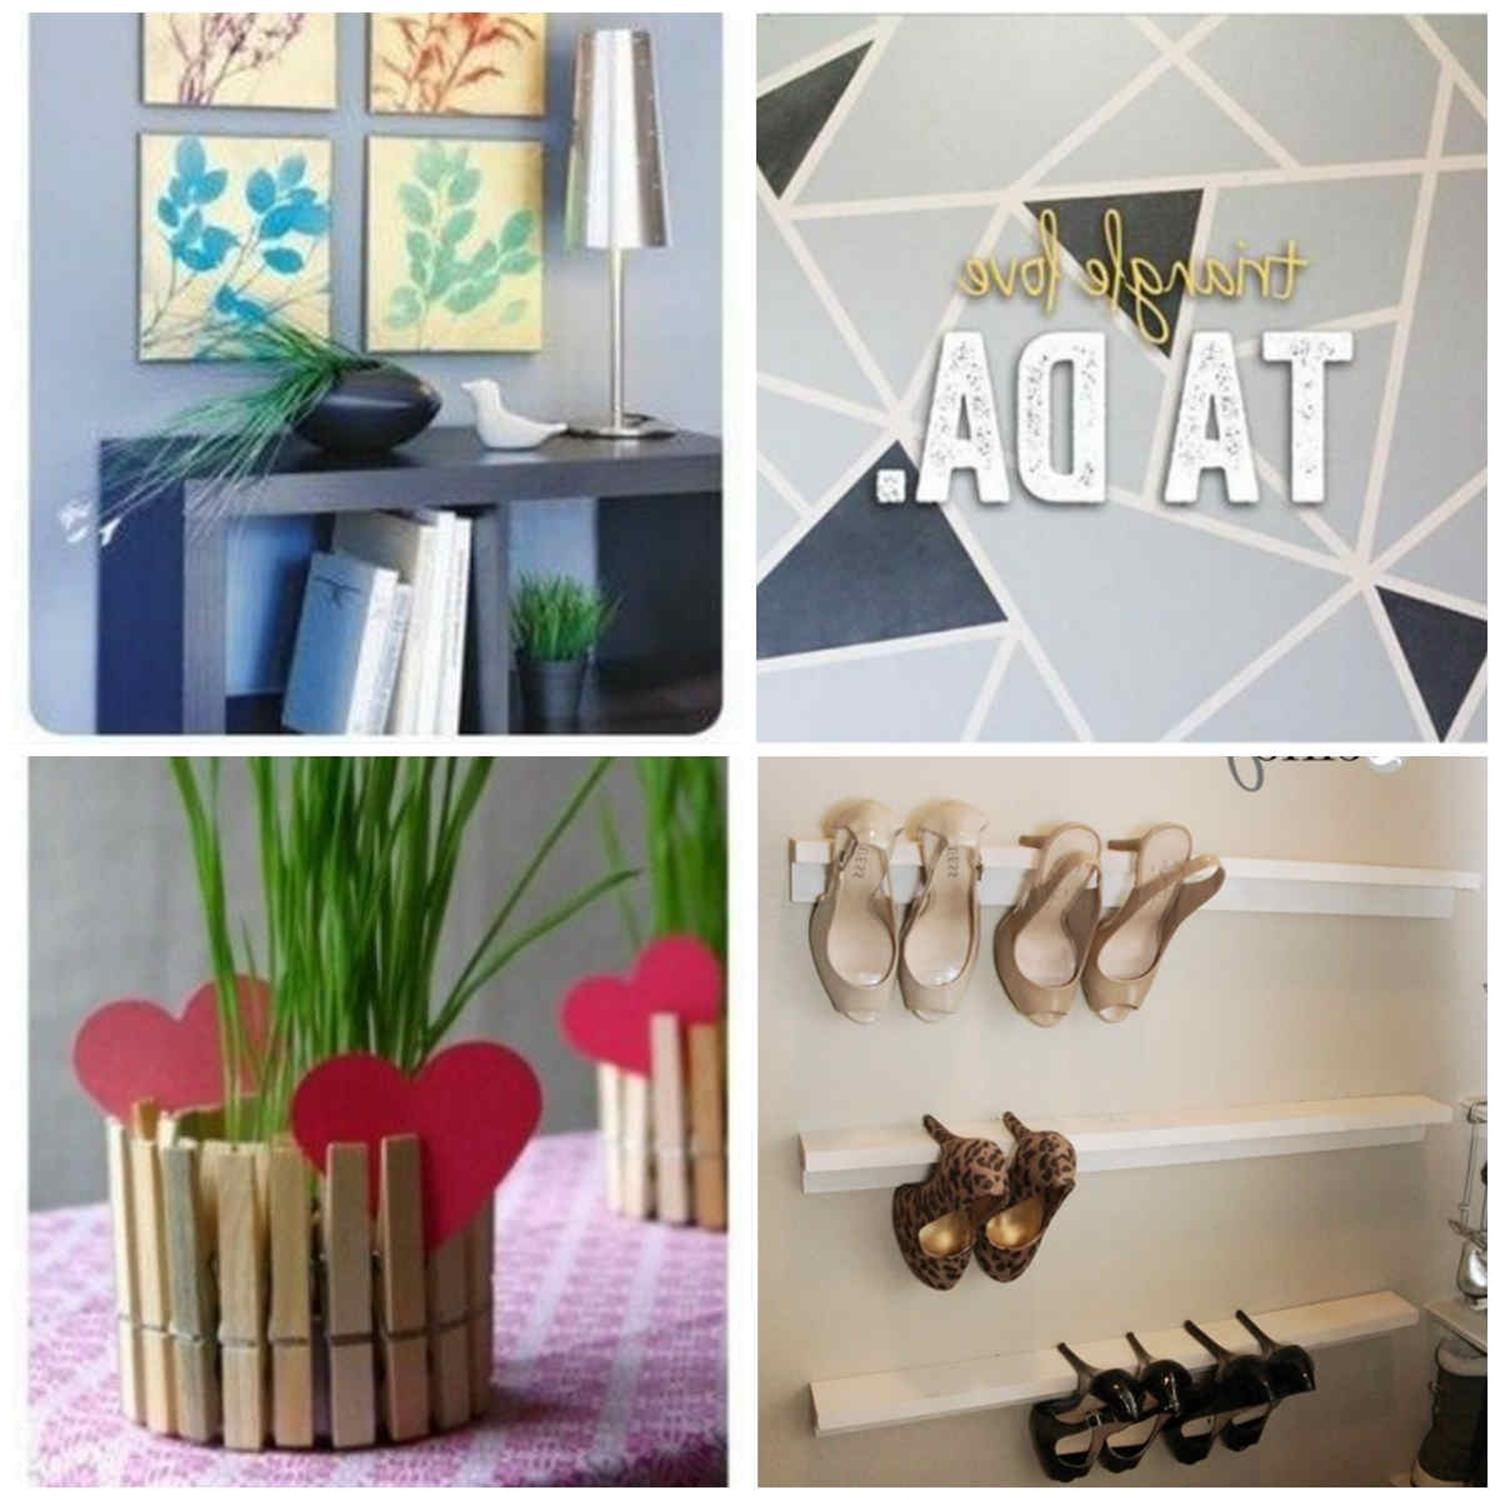 Creative Homemade Crafts for House Decorations Ideas 44